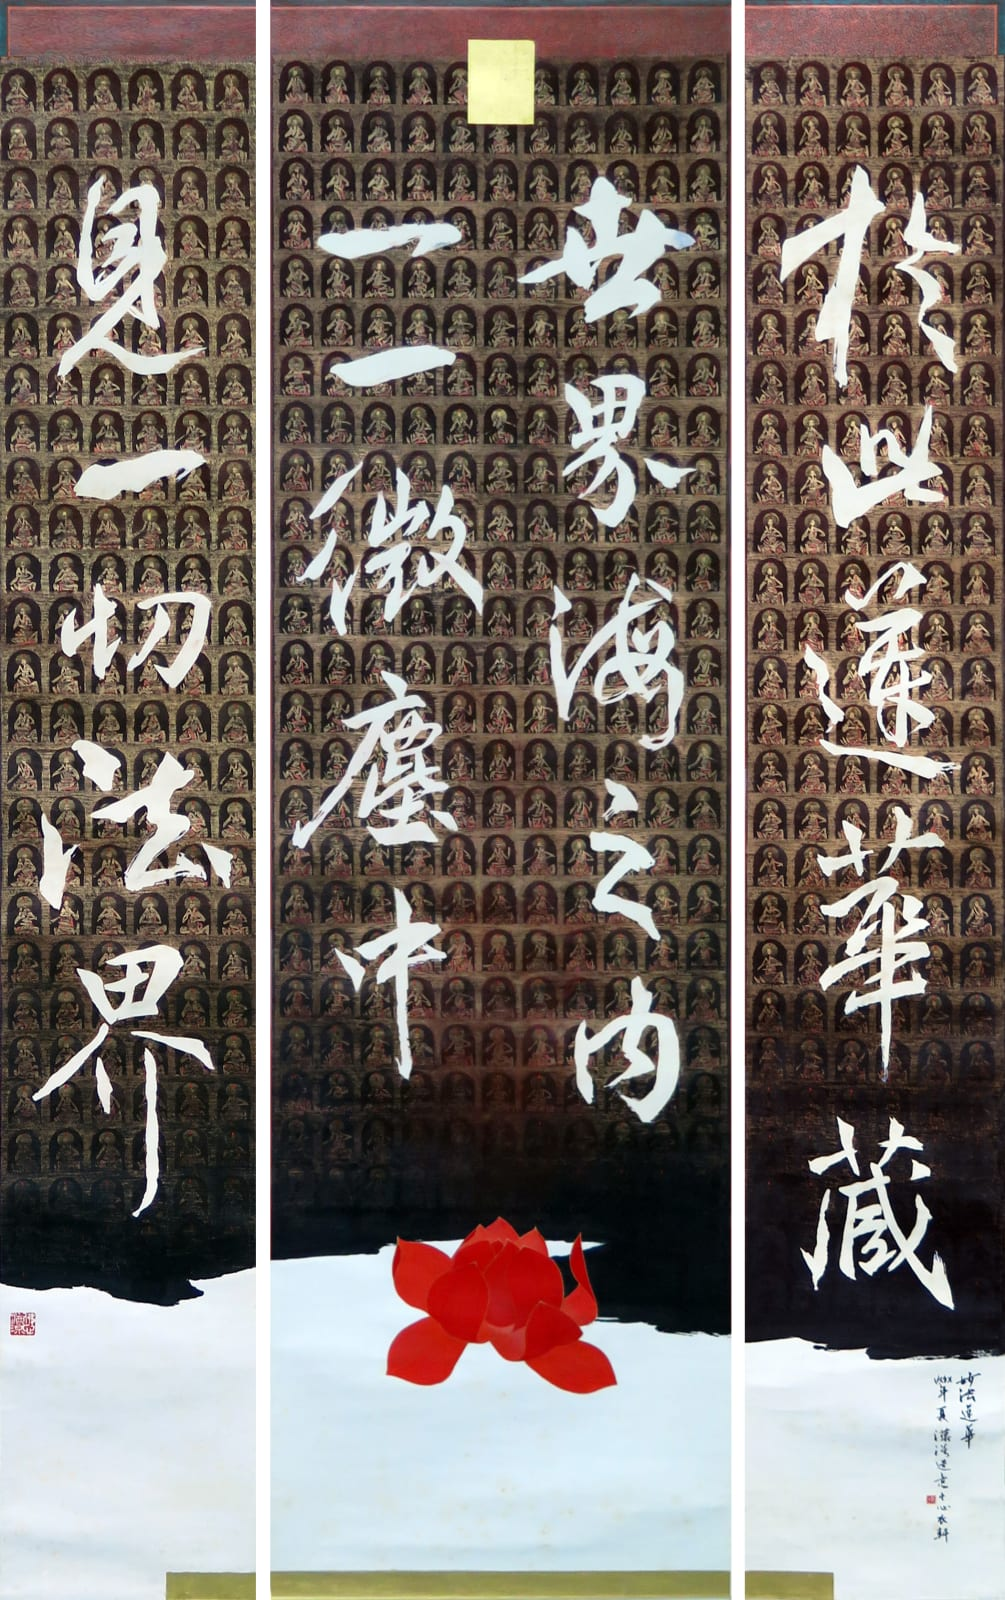 Kwok Hon Sum 郭漢深, Dharma (The Law) of Lotus 妙法蓮華, 1994